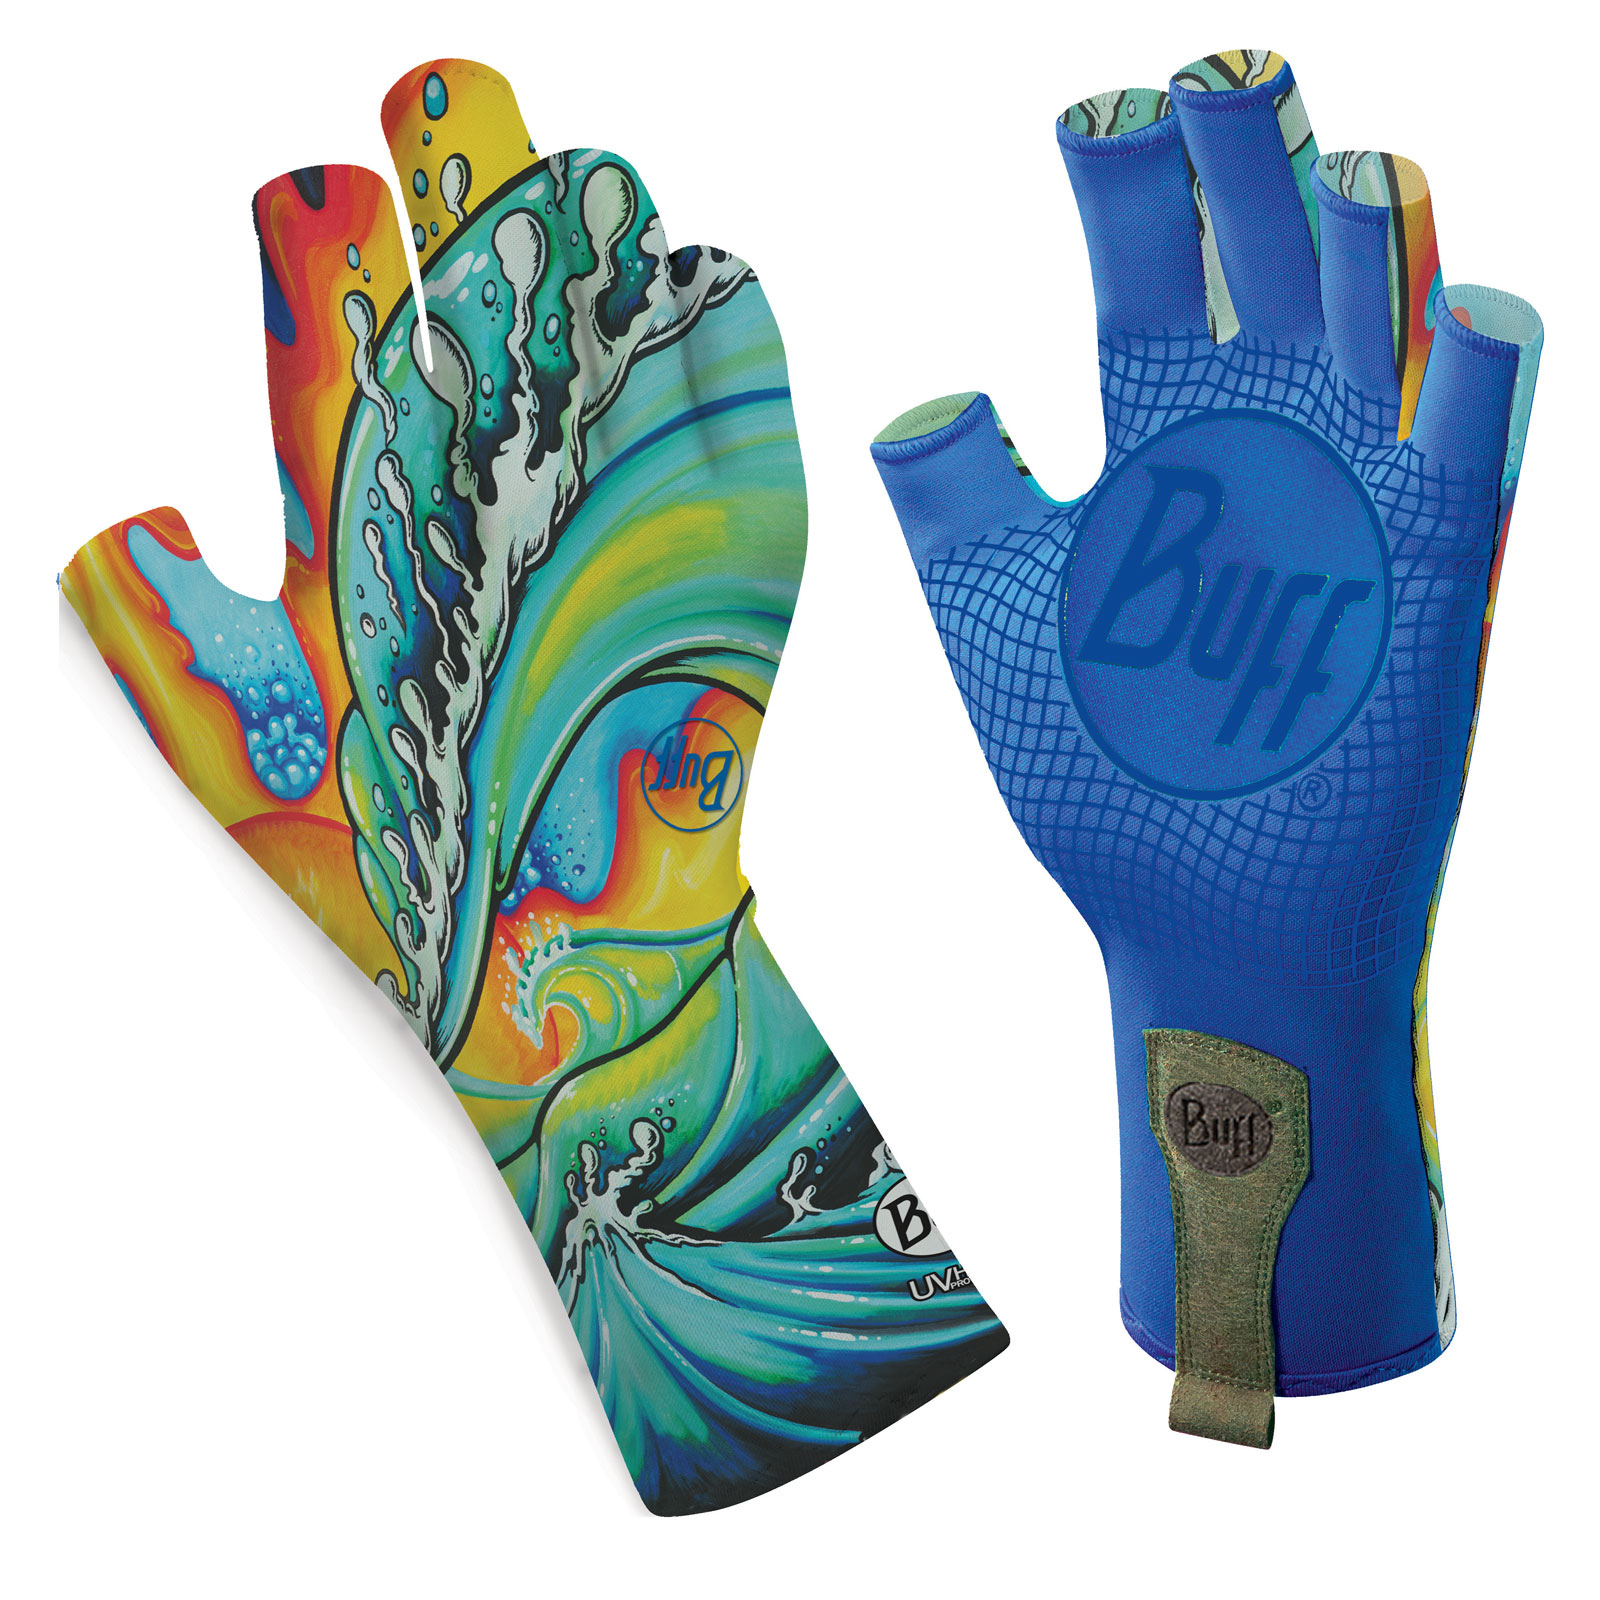 Buff sport series water gloves 2 fly fishing weather hand for Buff fishing gloves